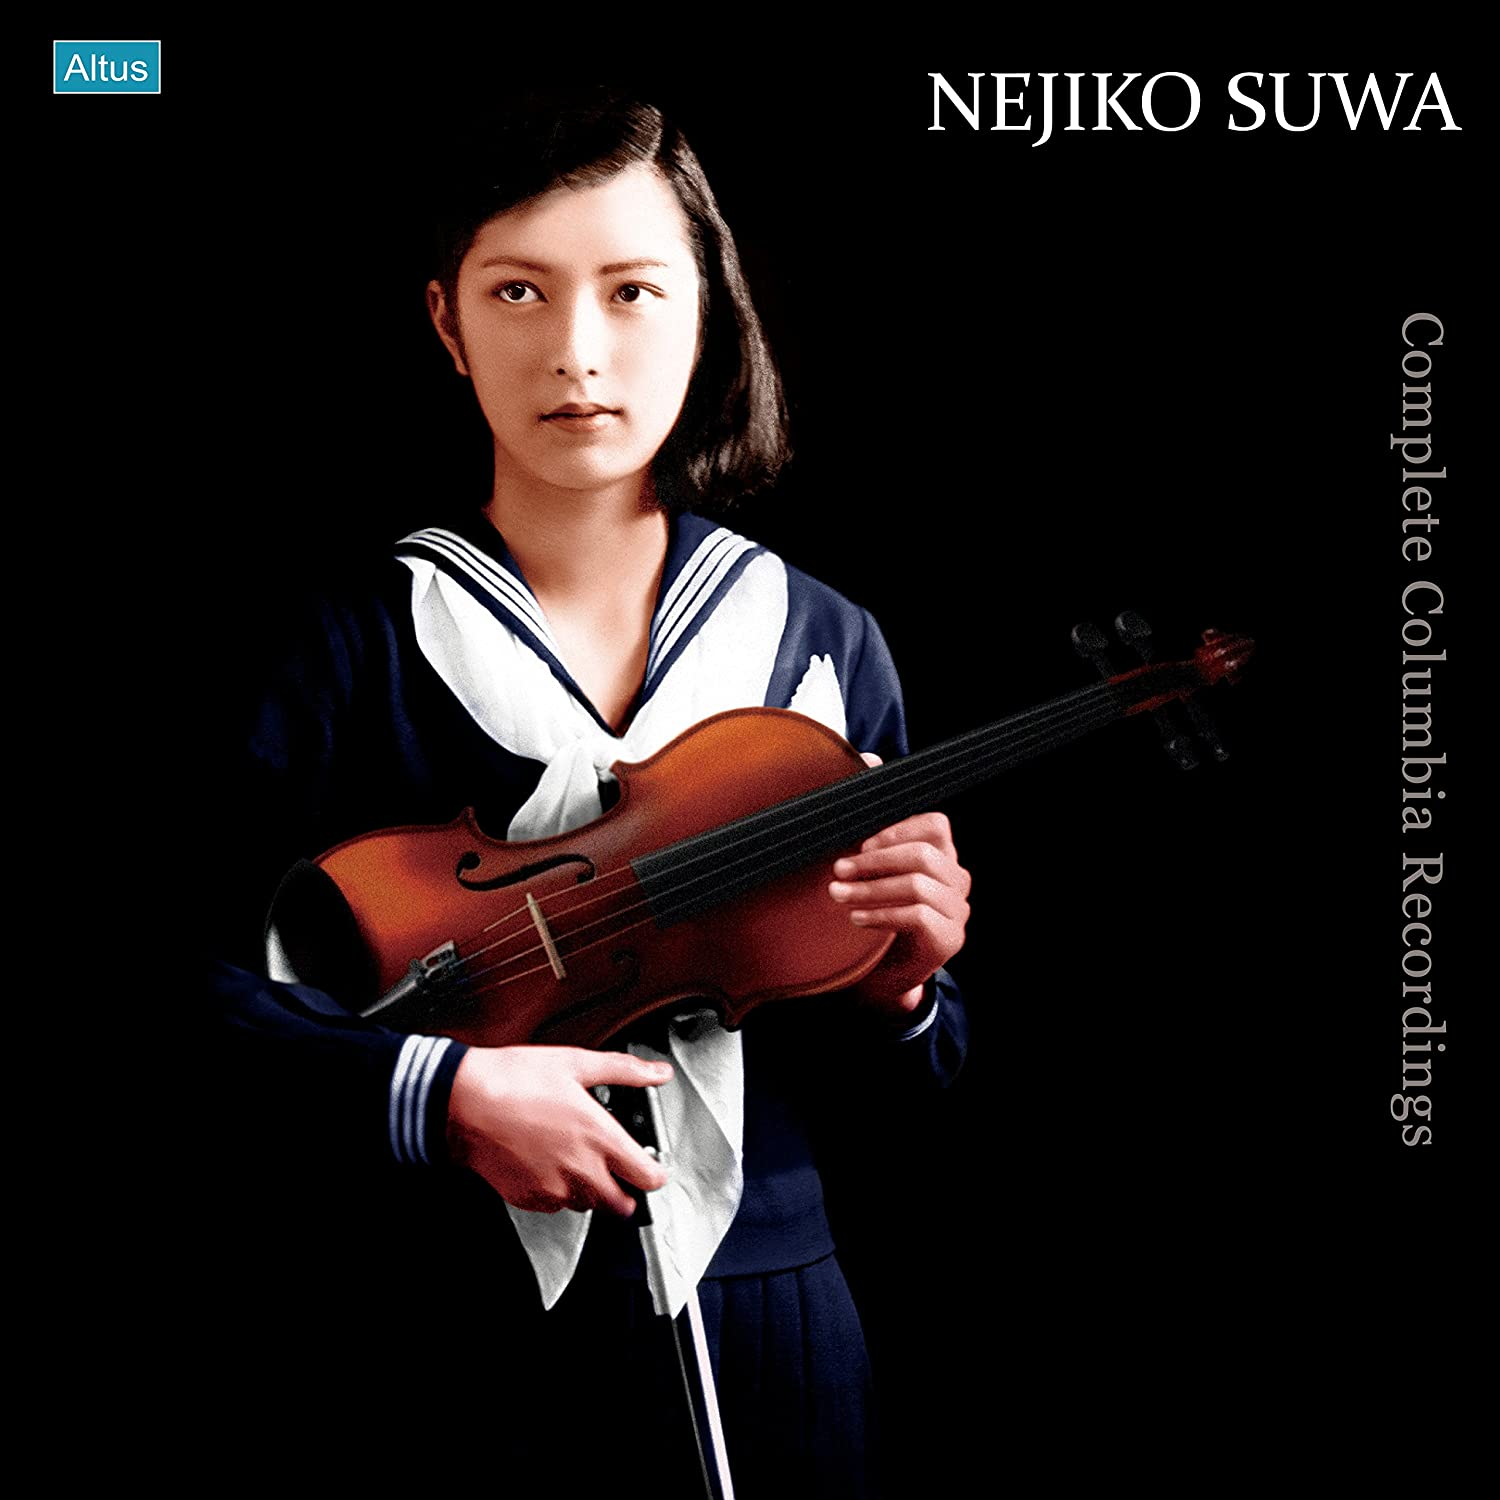 諏訪根自子 コロムビア録音全集 (Complete Columbia Recordings / Nejiko Suwa) [2LP] [Limited Edition] [日本語帯解説付] [Analog]                                                                                                                                                                                                                                                    <span class=